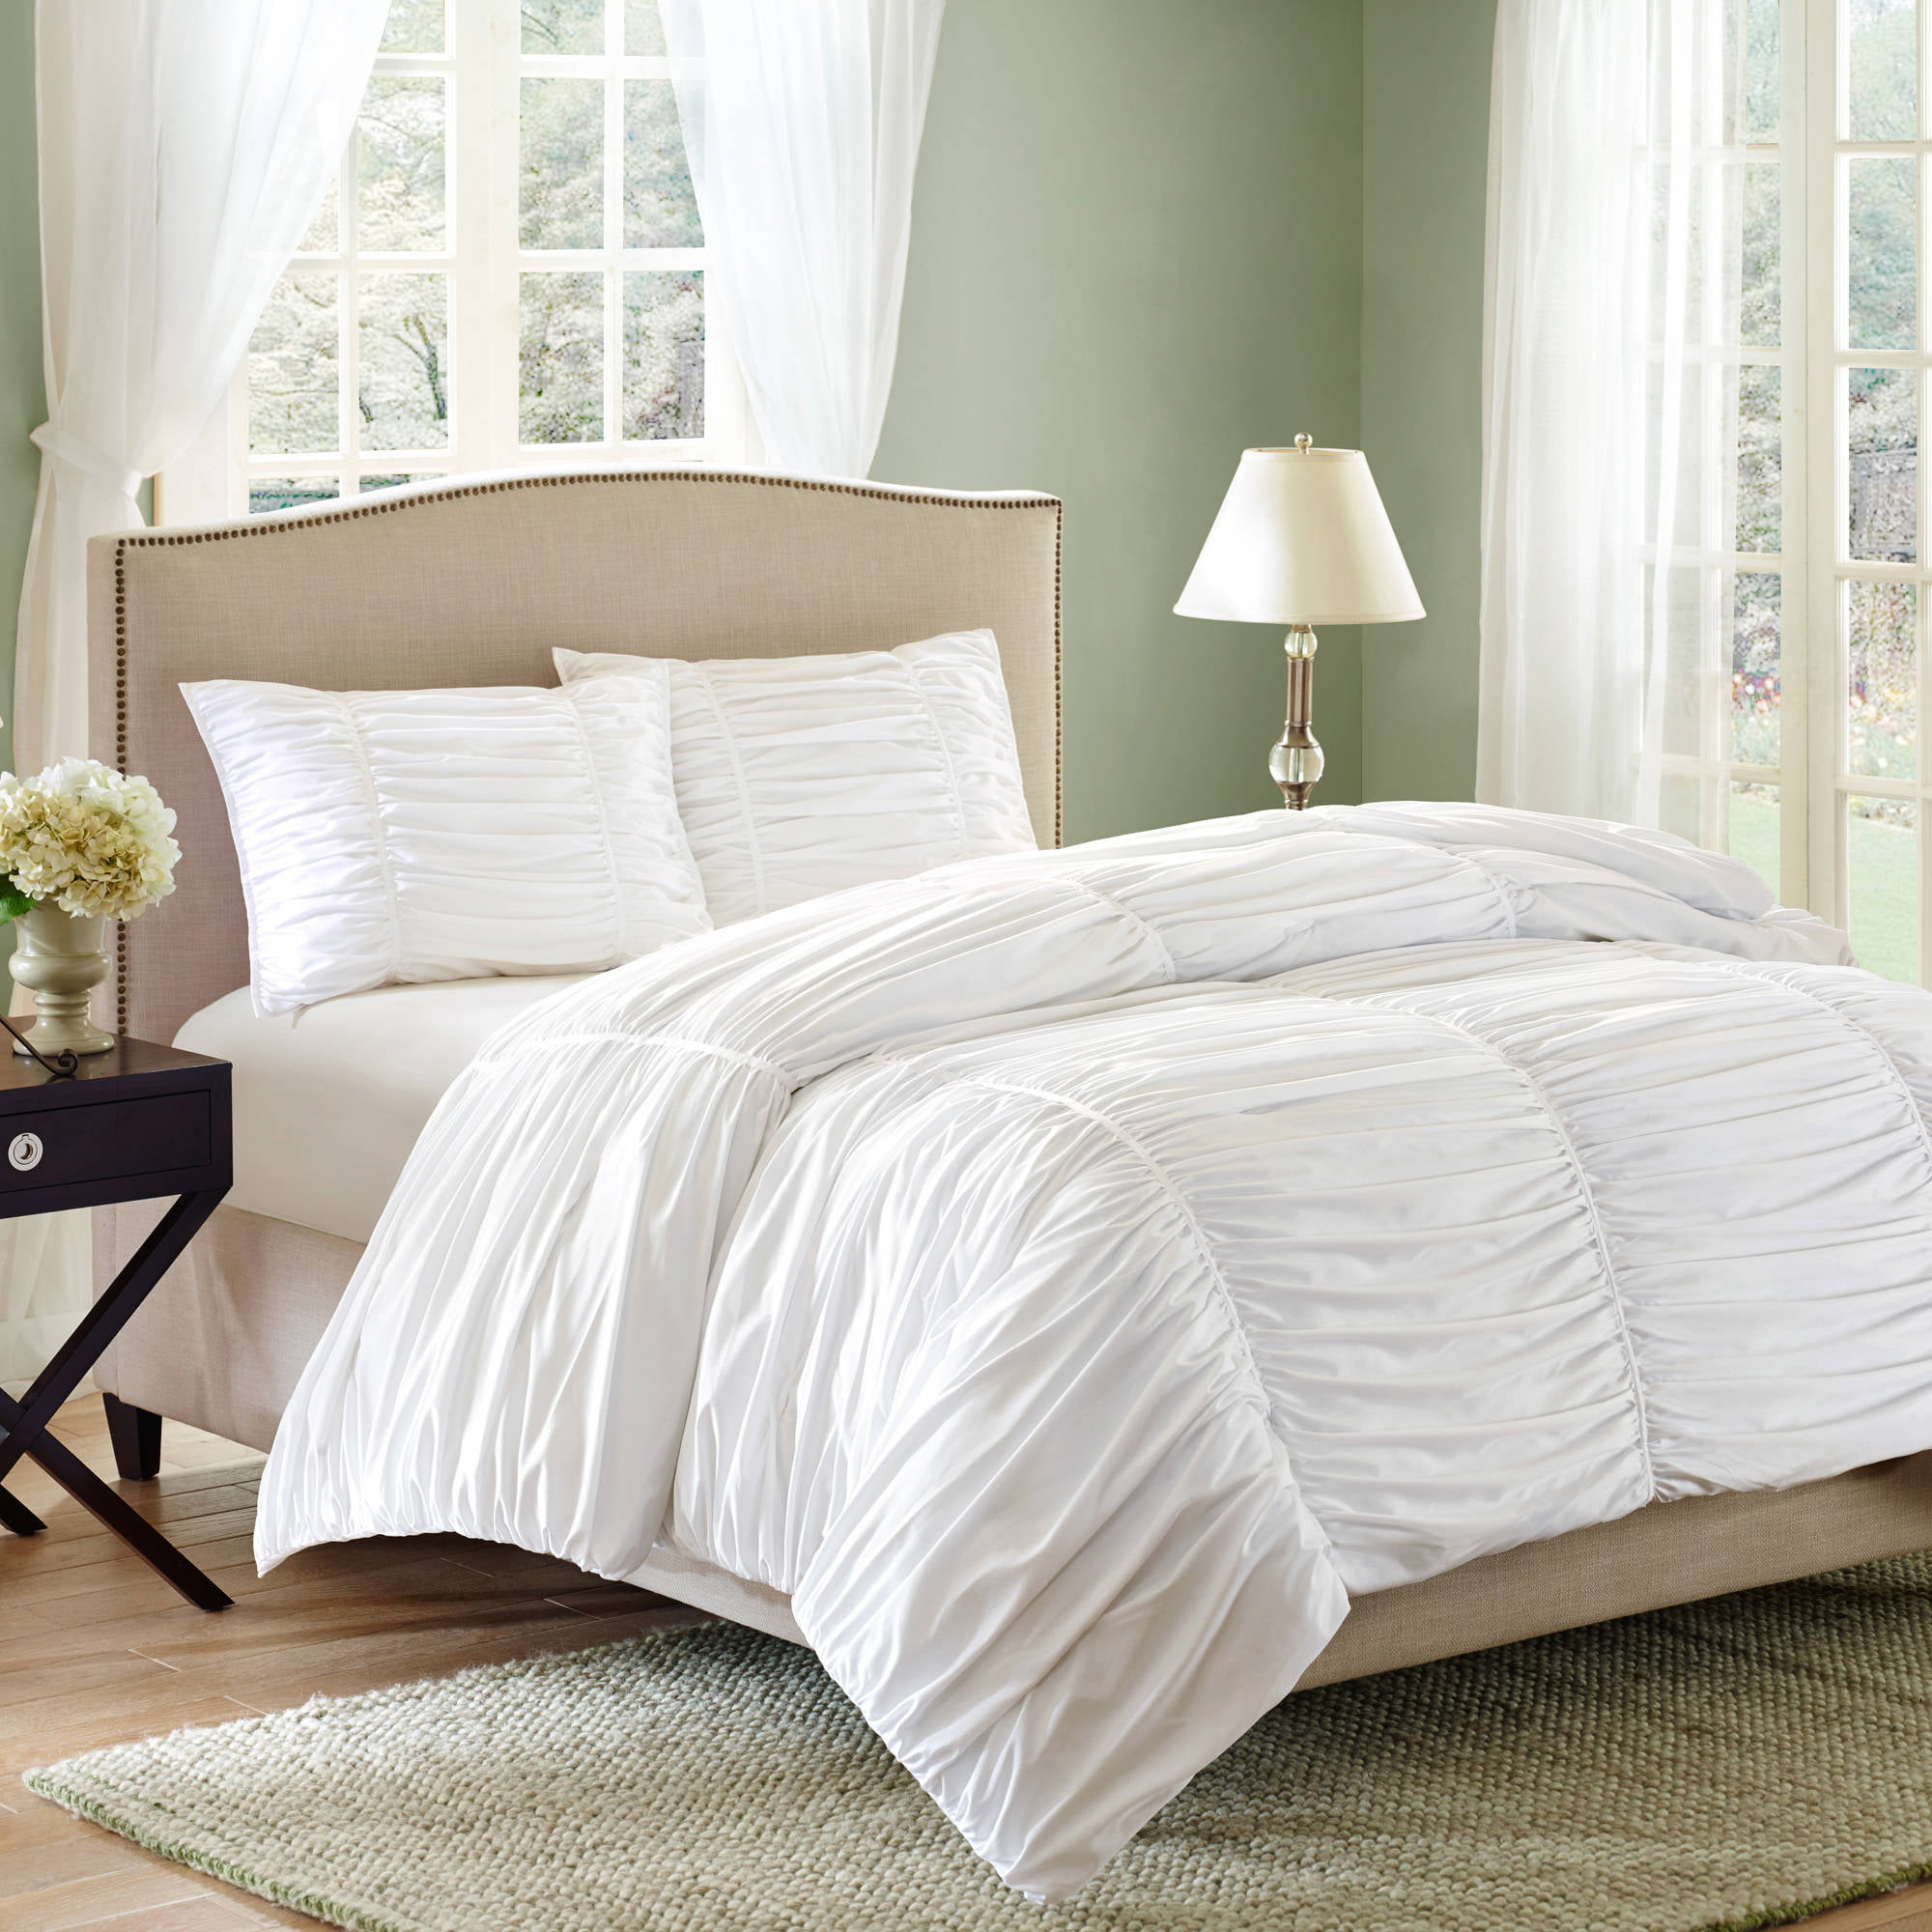 Wonderful Better Homes and Gardens Ruching 3-Piece Comforter Set - Walmart.com IE41